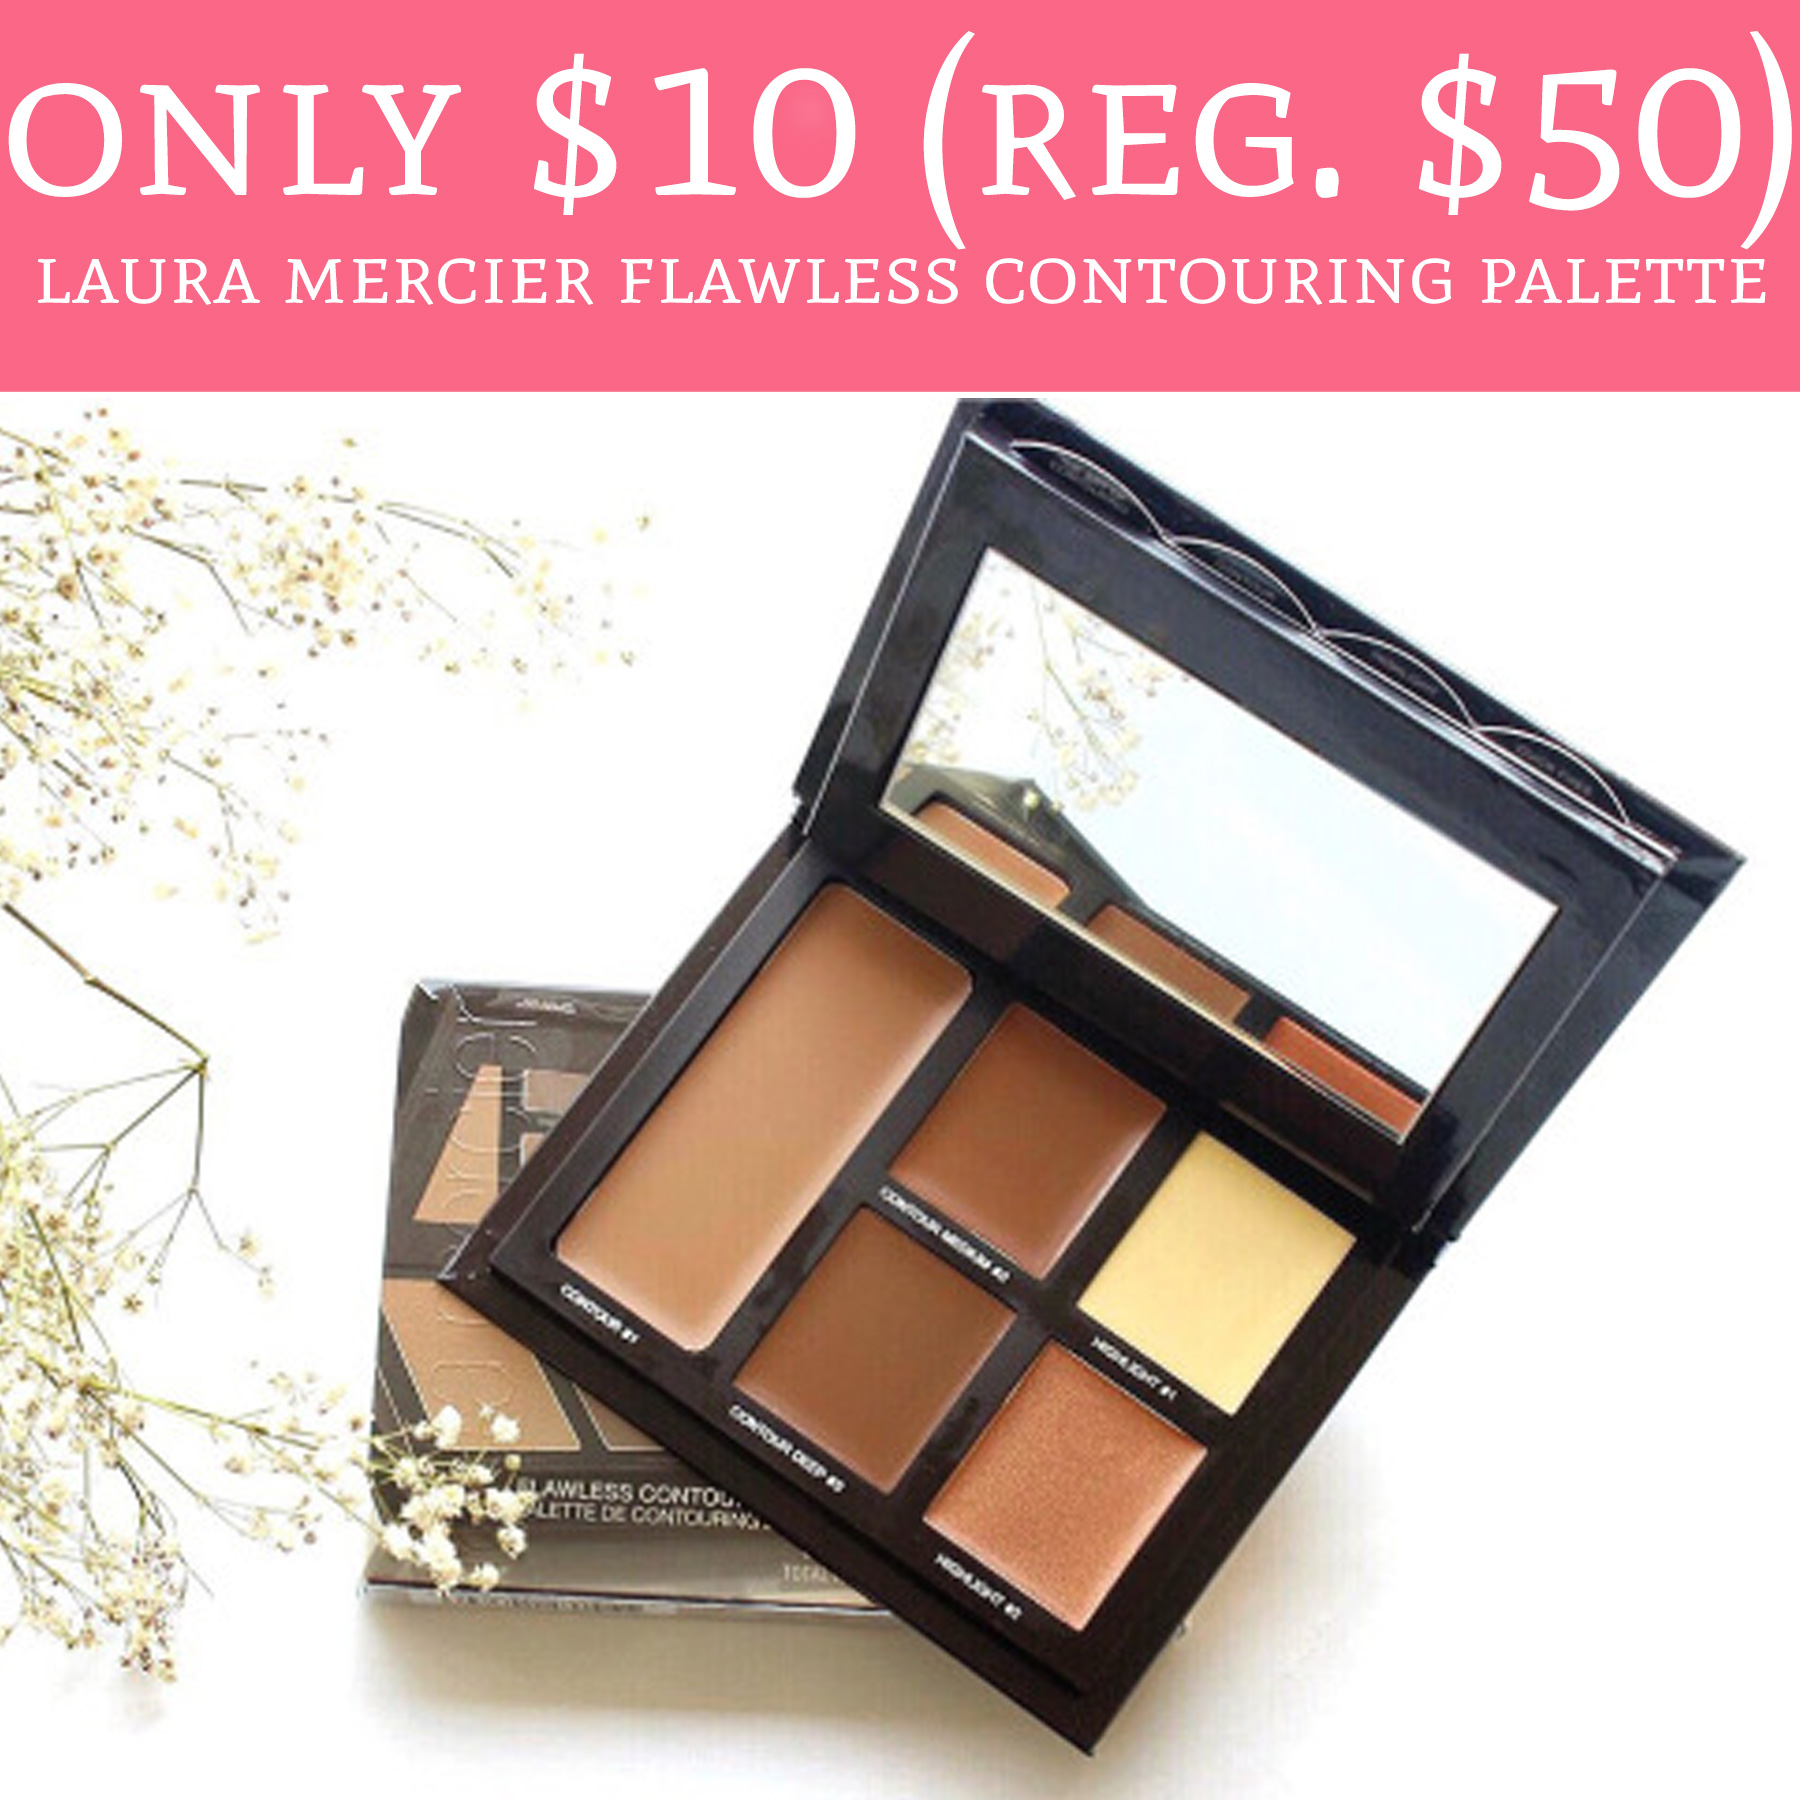 only  10  regular  50  laura mercier flawless contouring